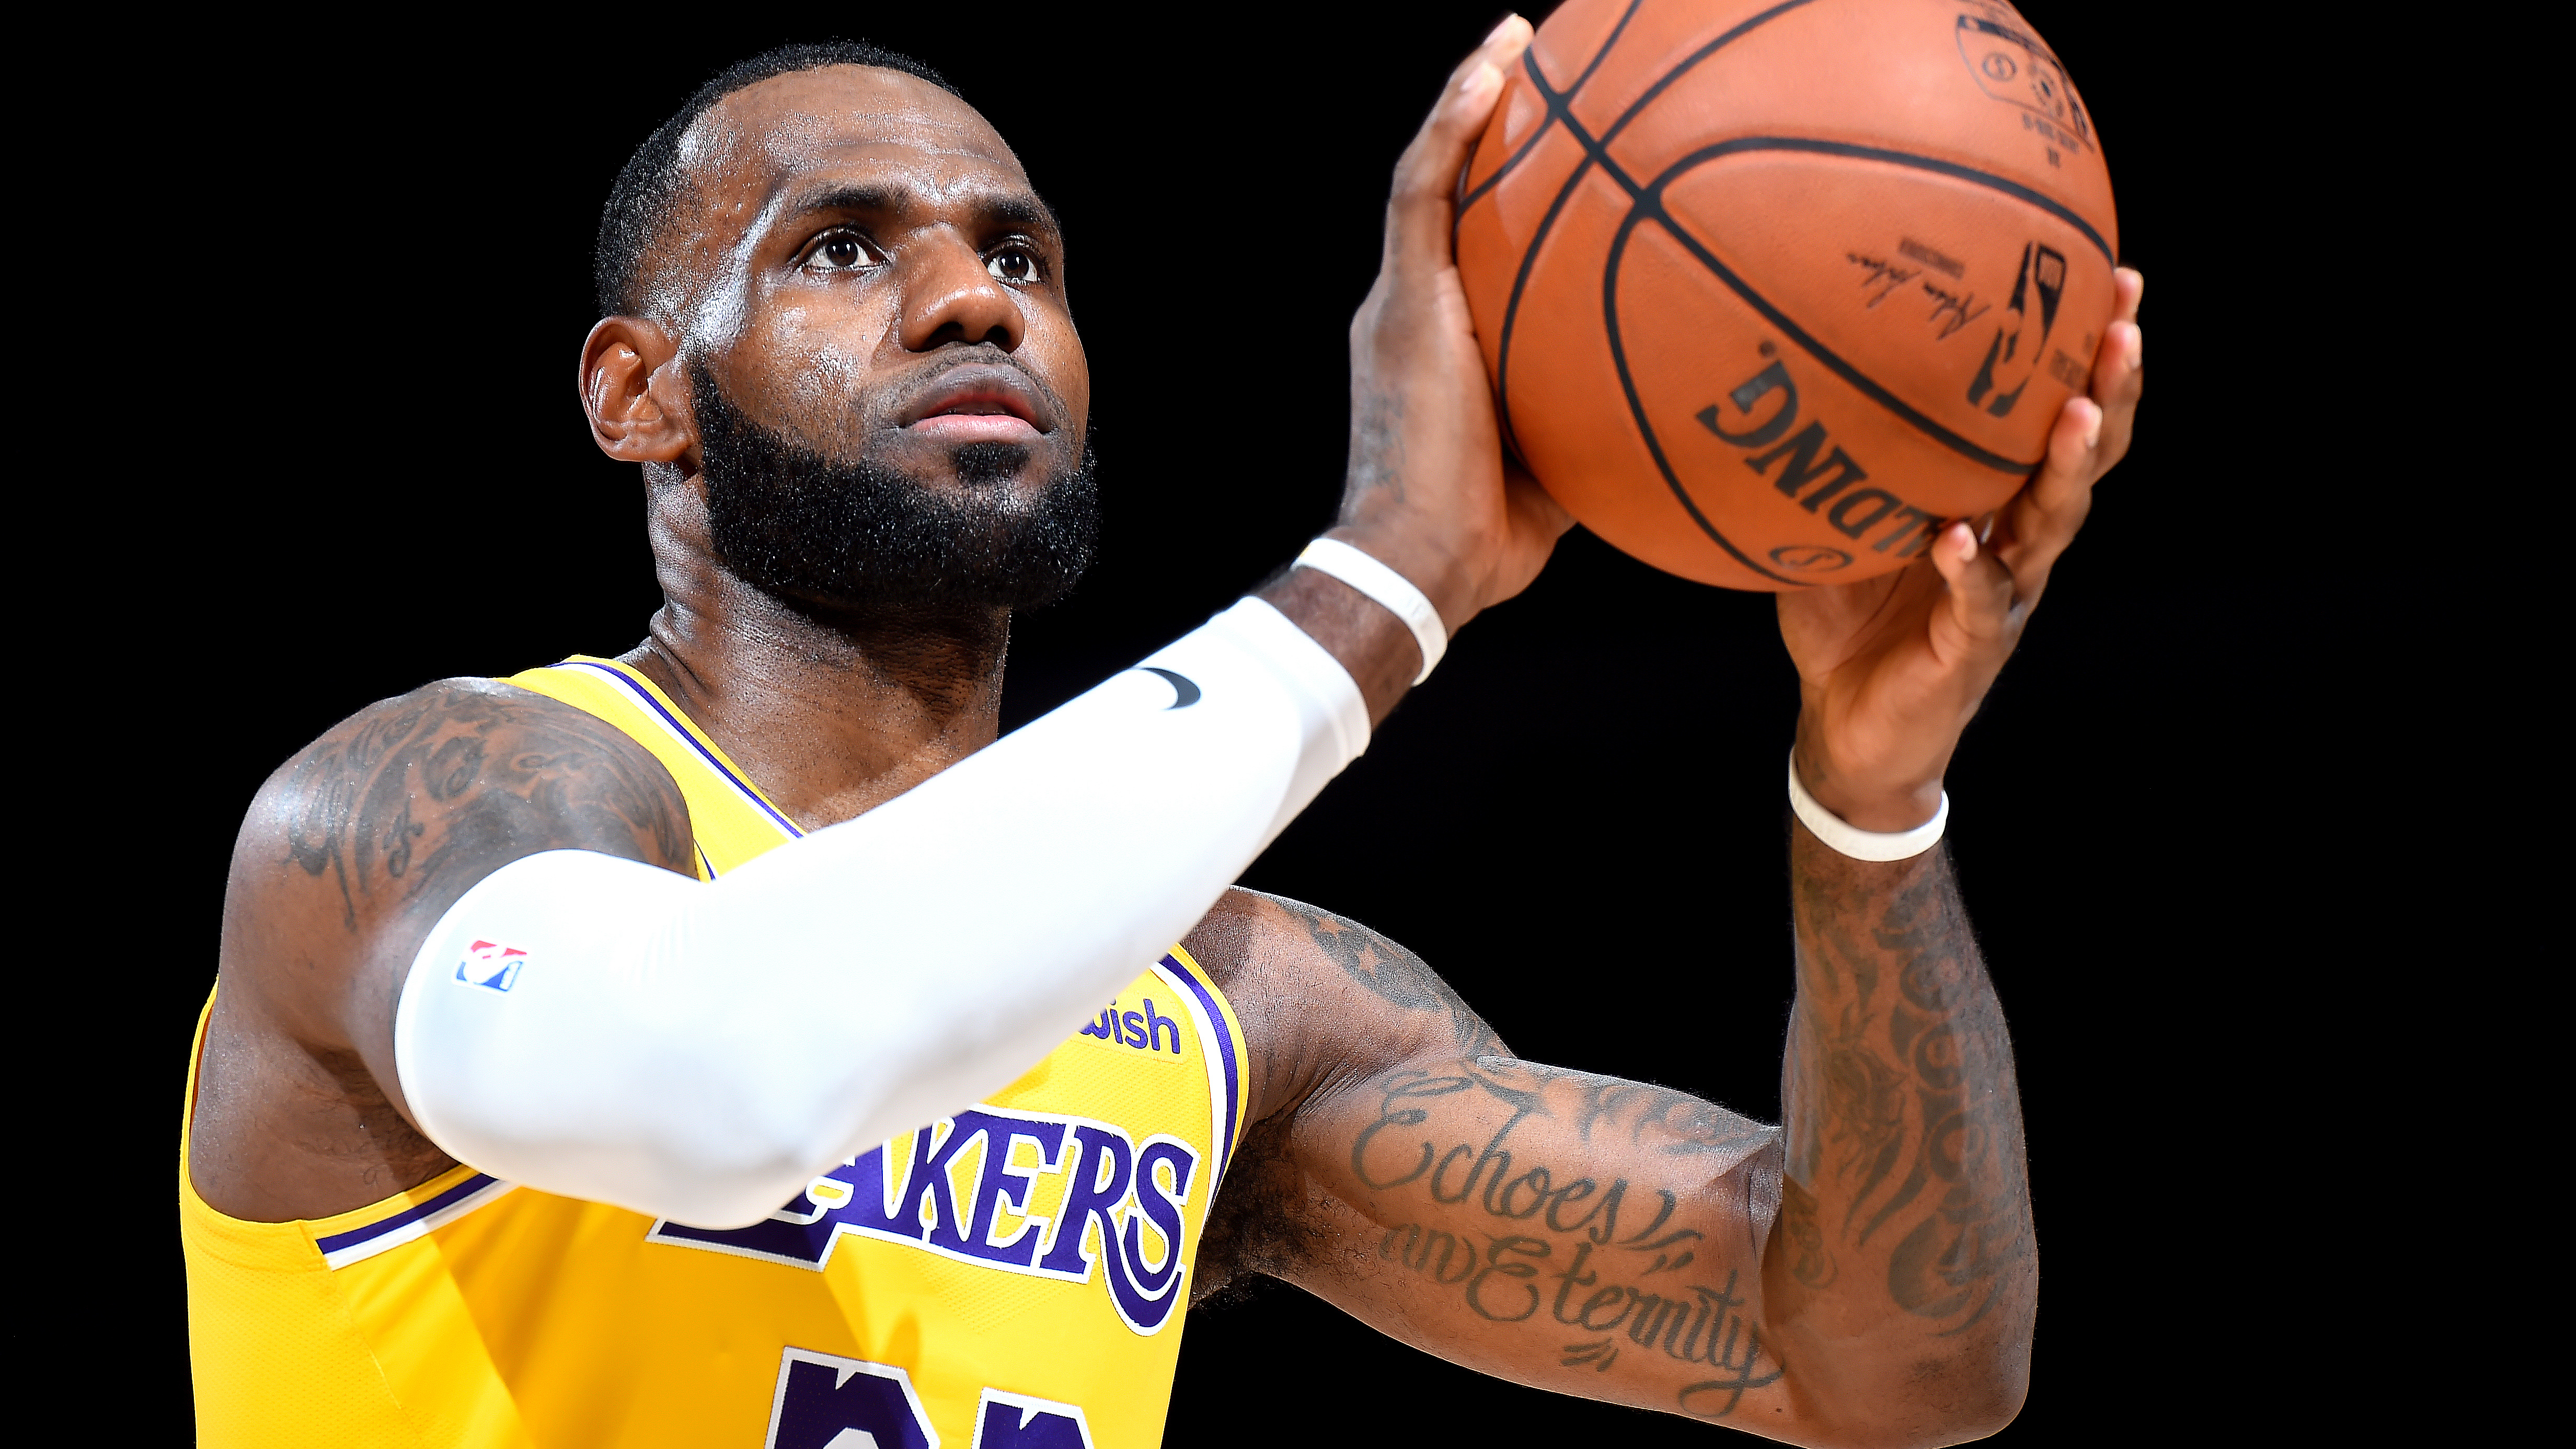 LeBron James gifts his jersey to L.A. athletes, omits the Kings